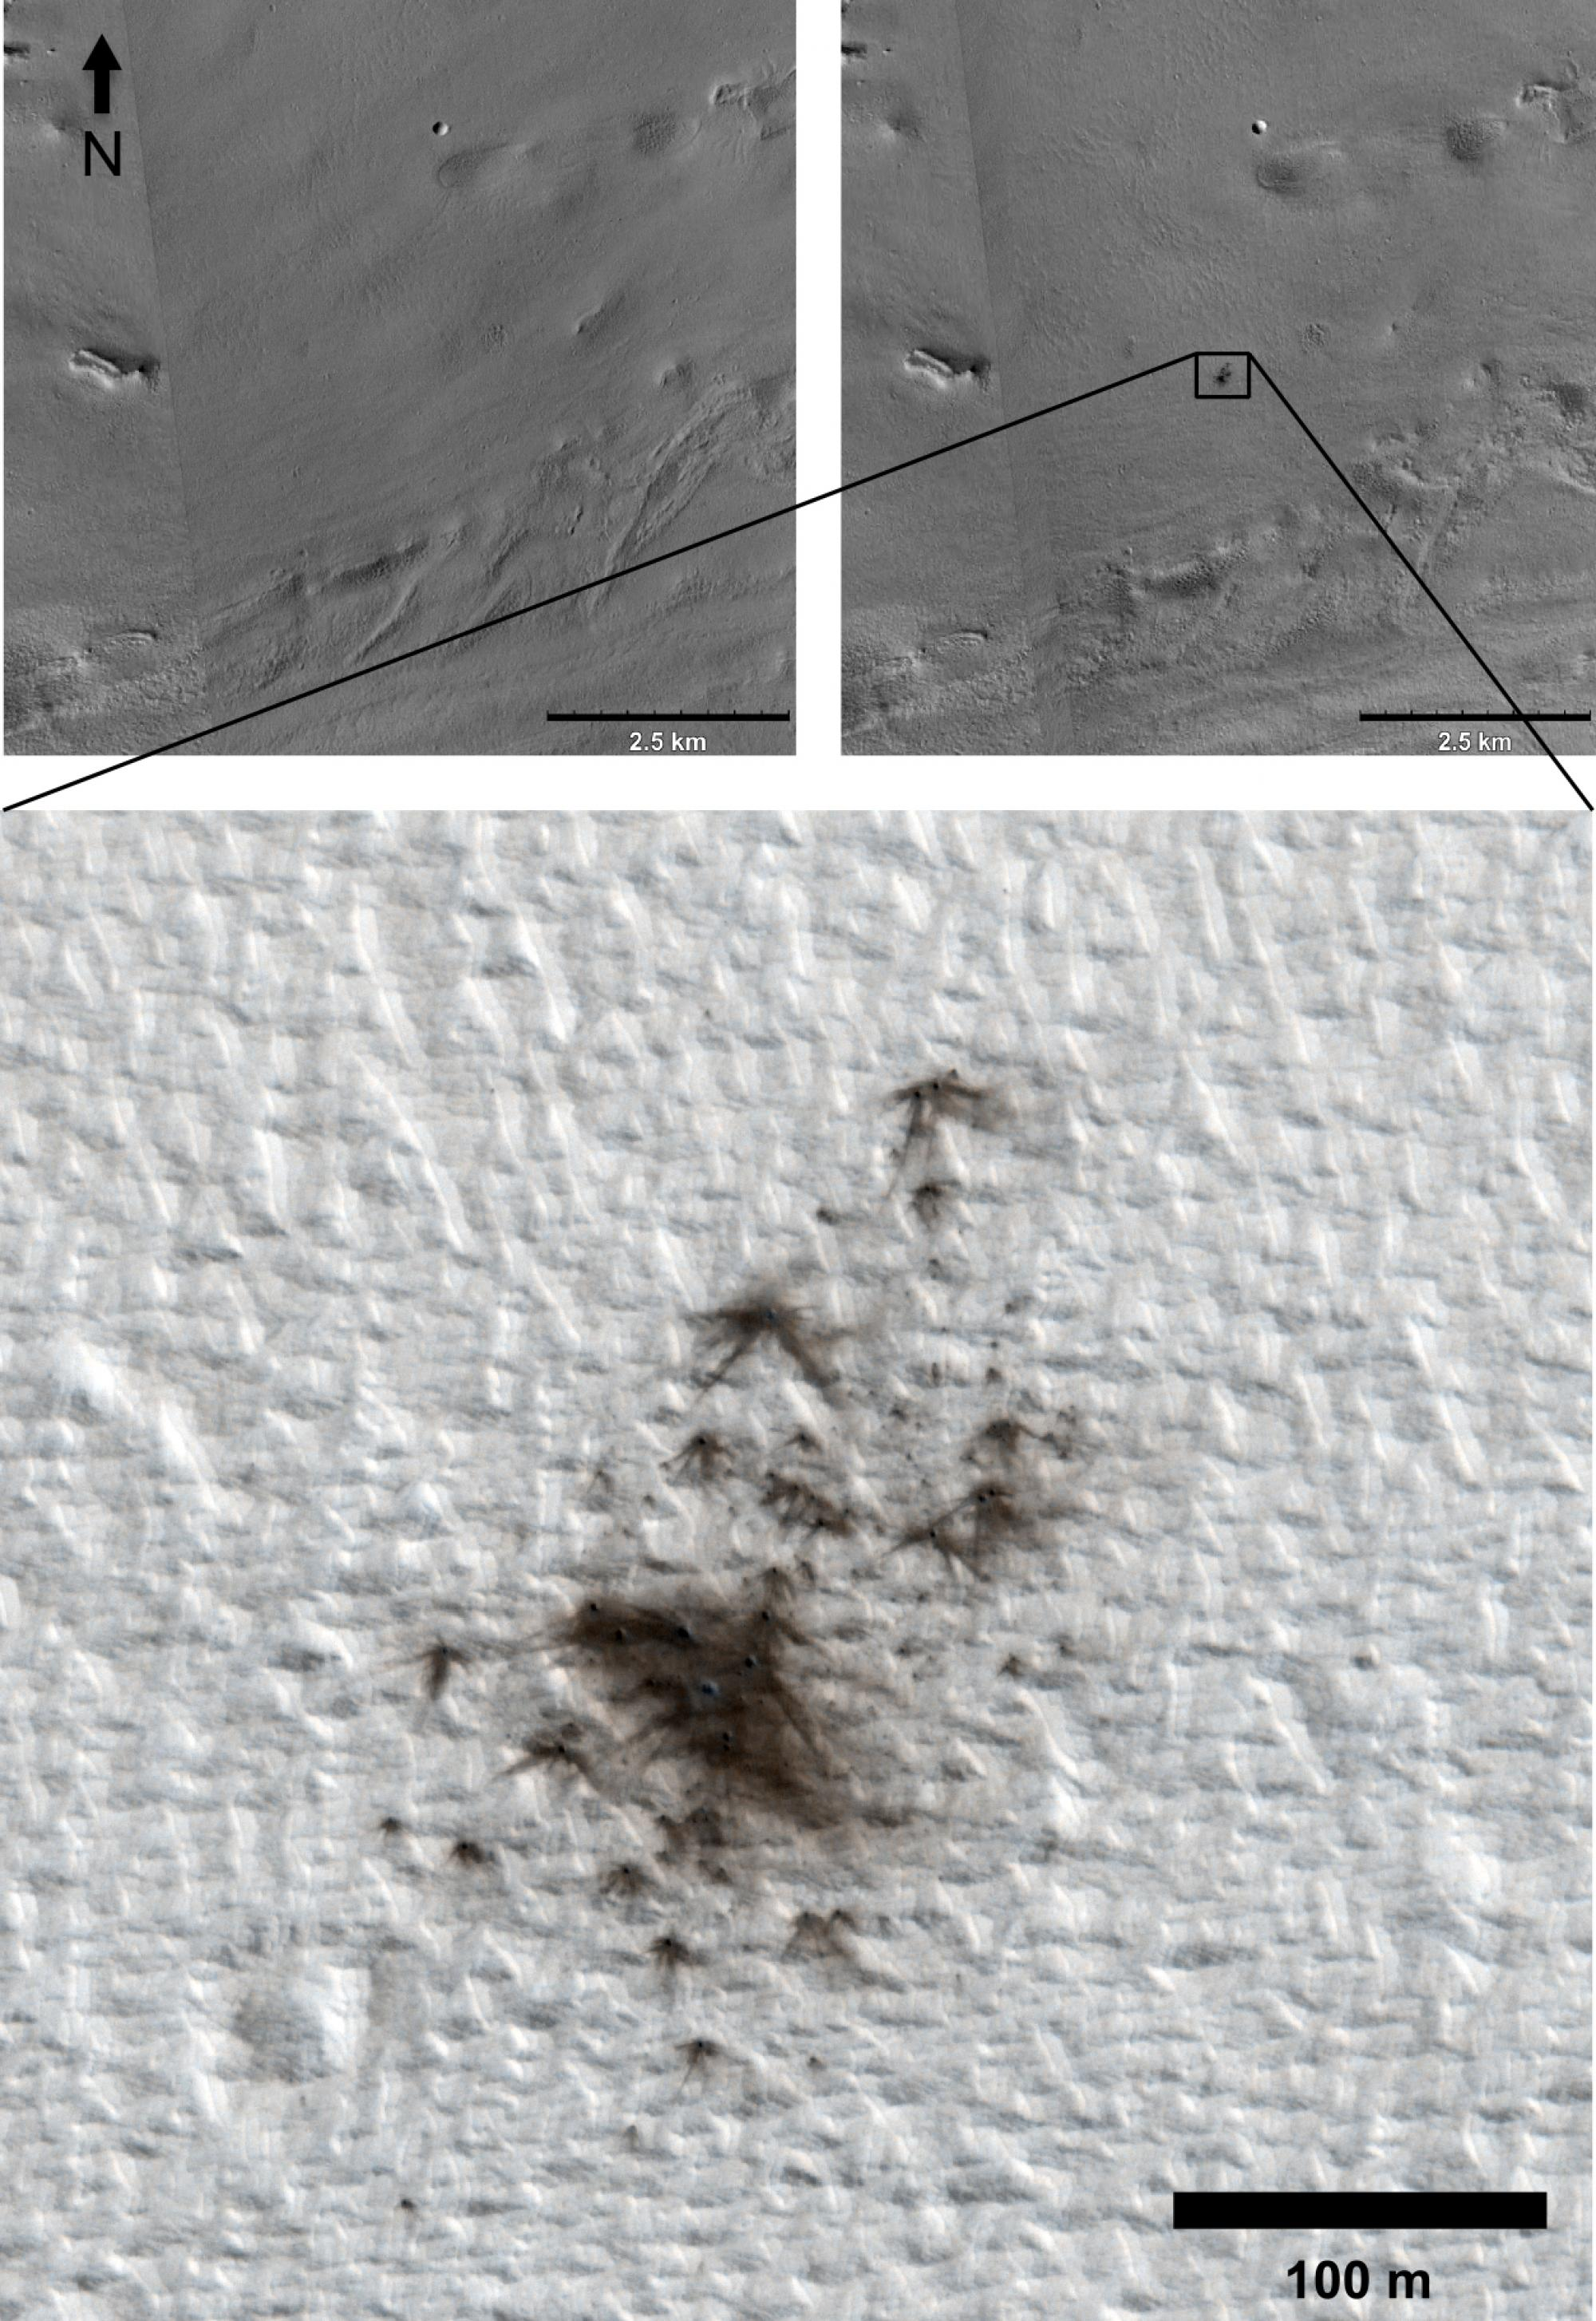 Images taken by the UA-led High Resolution Imaging Experiment, or HiRISE, reveal new impact craters that formed between 2010 and 2011.